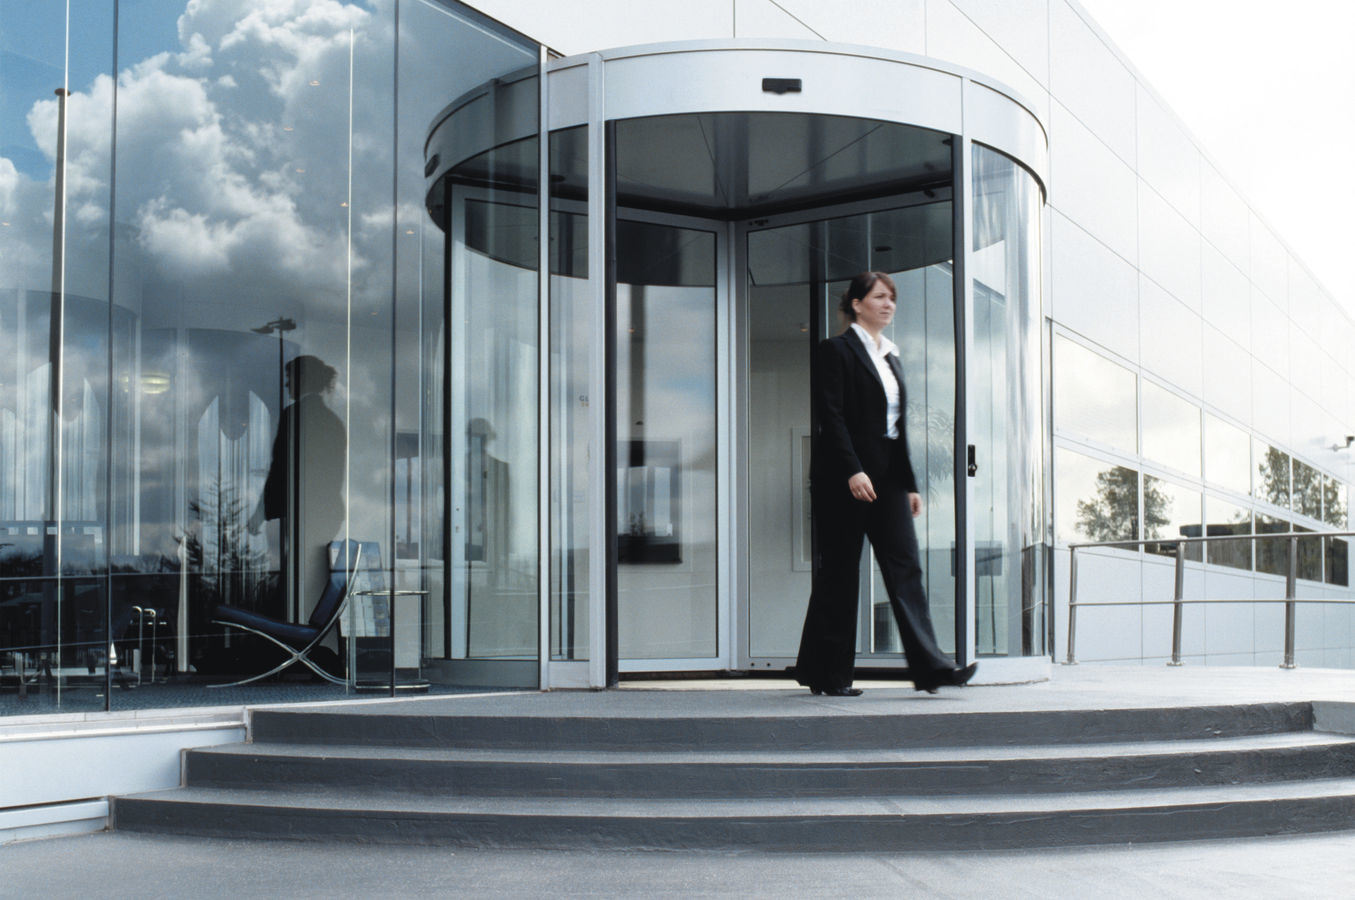 Automatic Revolving Door, 3 Wings, Lenze Motor, Siemens Frequency Invertor, Disabled Switch and Emergency Stop Switch